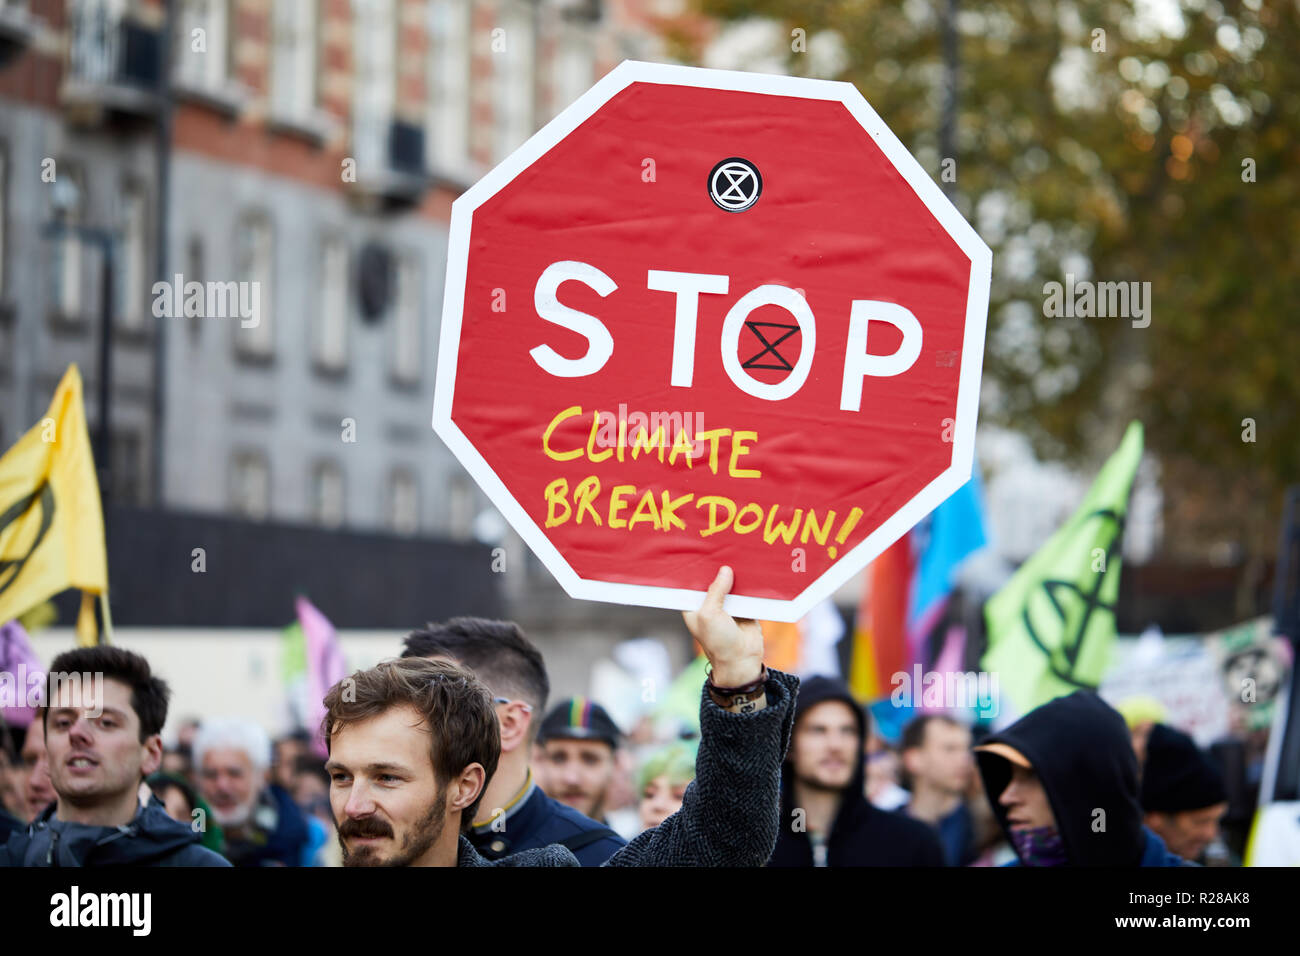 London, UK. - November 17, 2018: A protestor holds a banner during the Extinction Rebellion Climate March. Credit: Kevin J. Frost/Alamy Live News - Stock Image